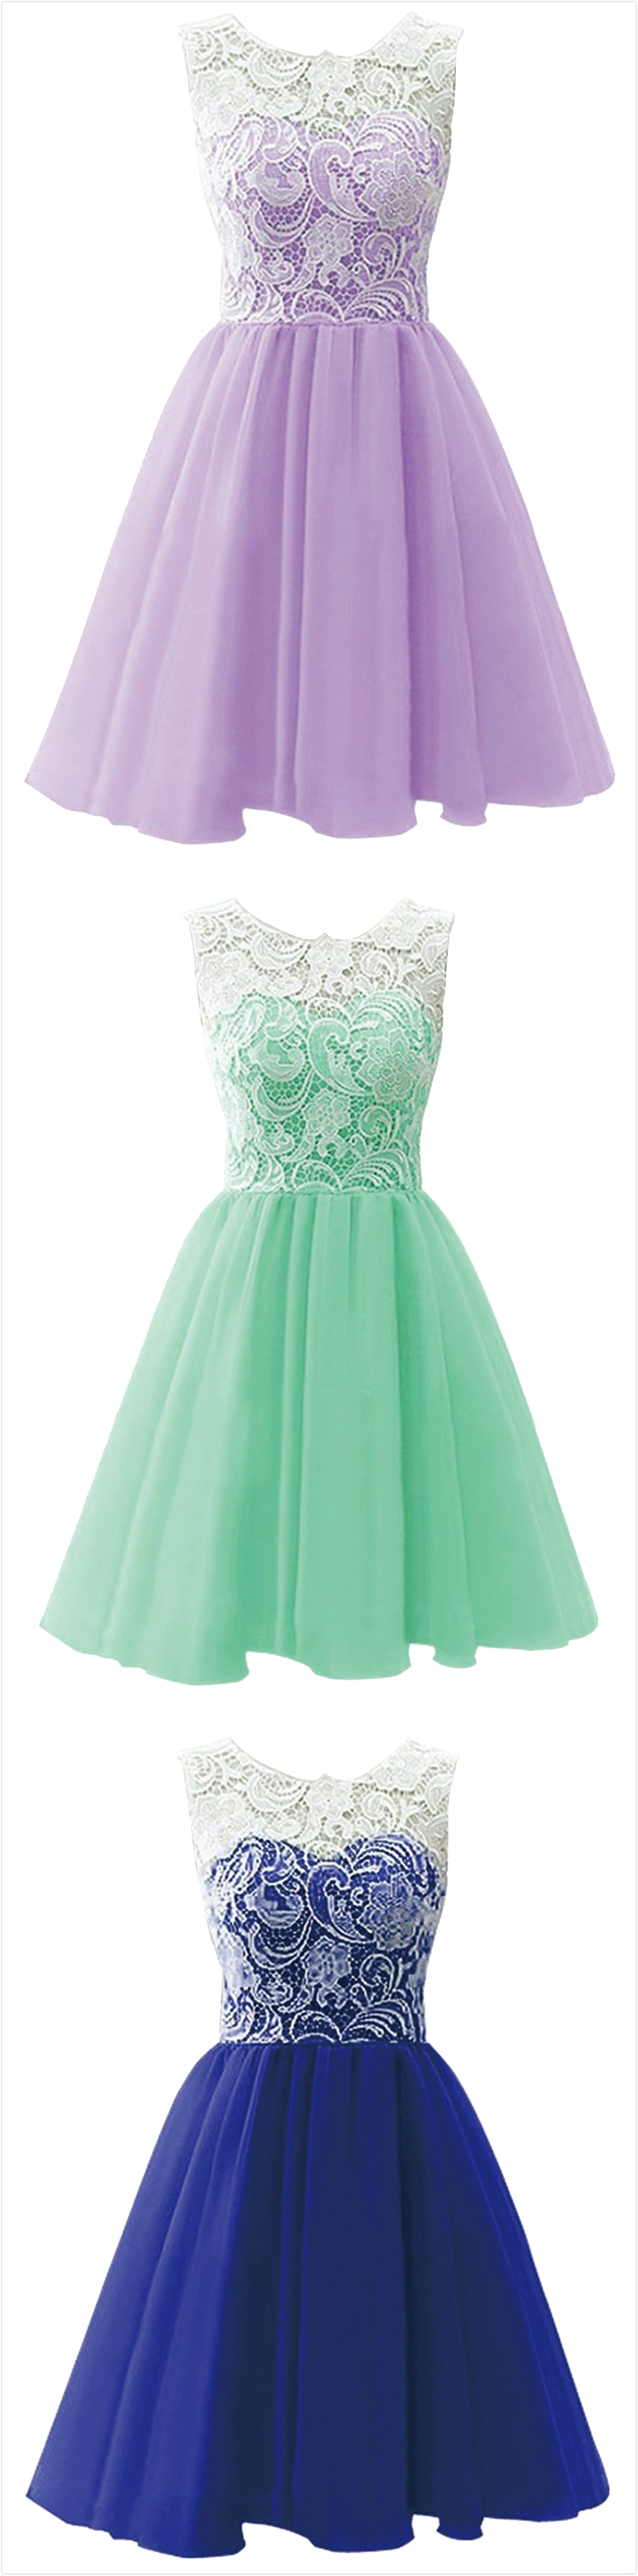 Lace paneled sleeveless aline cocktail dress prom clothing and